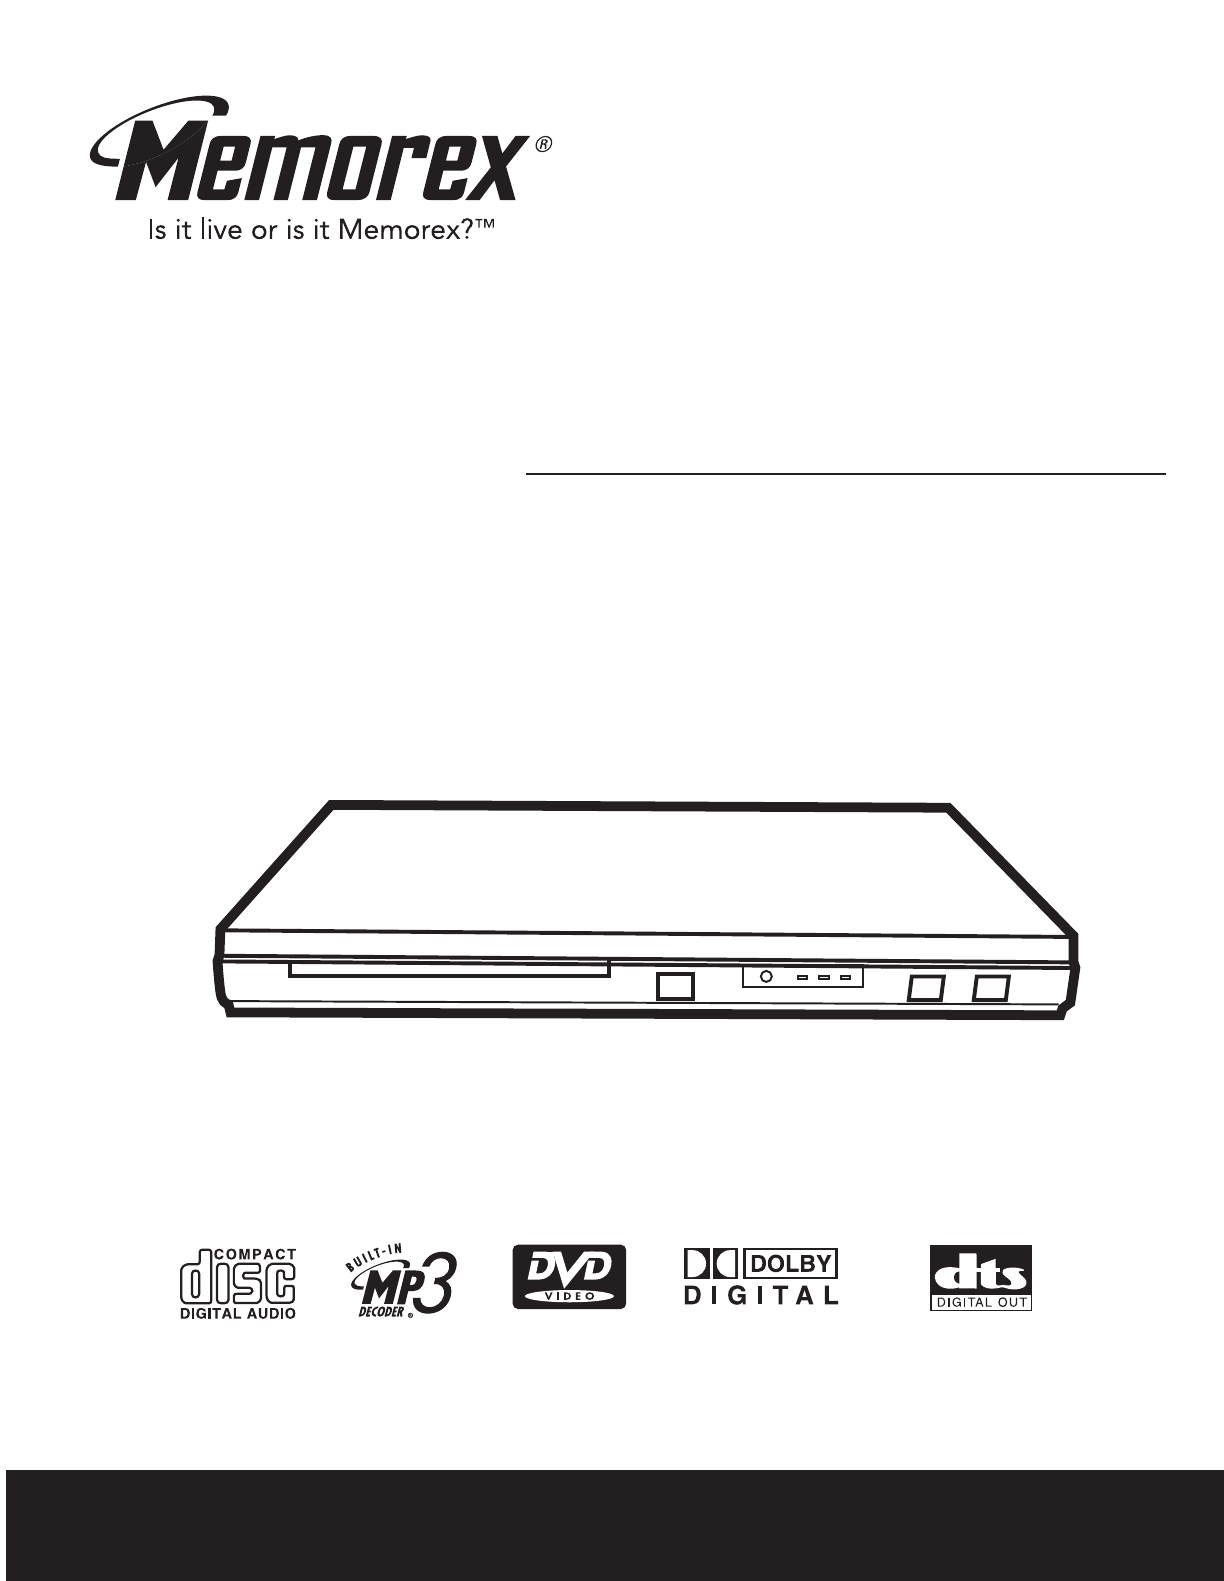 memorex dvd player mvd2022 user guide manualsonline com rh tv manualsonline com memorex progressive scan dvd/cd player manual memorex dvd player mvd2022 manual